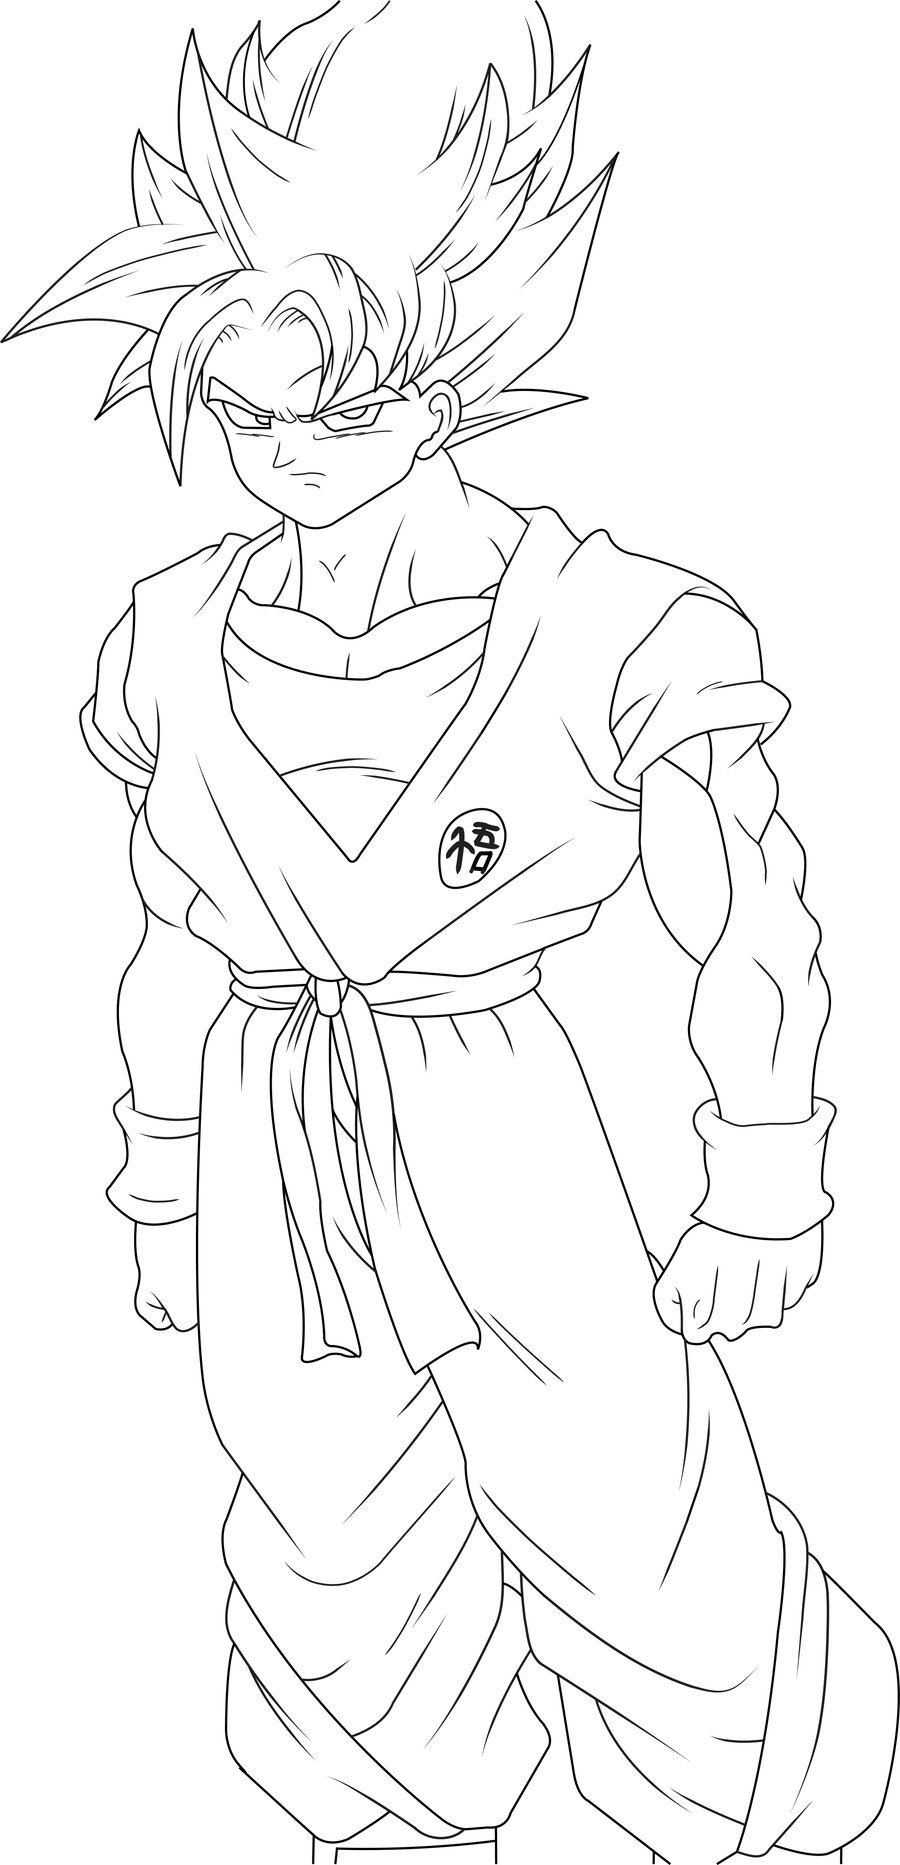 goku pictures to print goku coloring pages coloring pages to print pictures print to goku